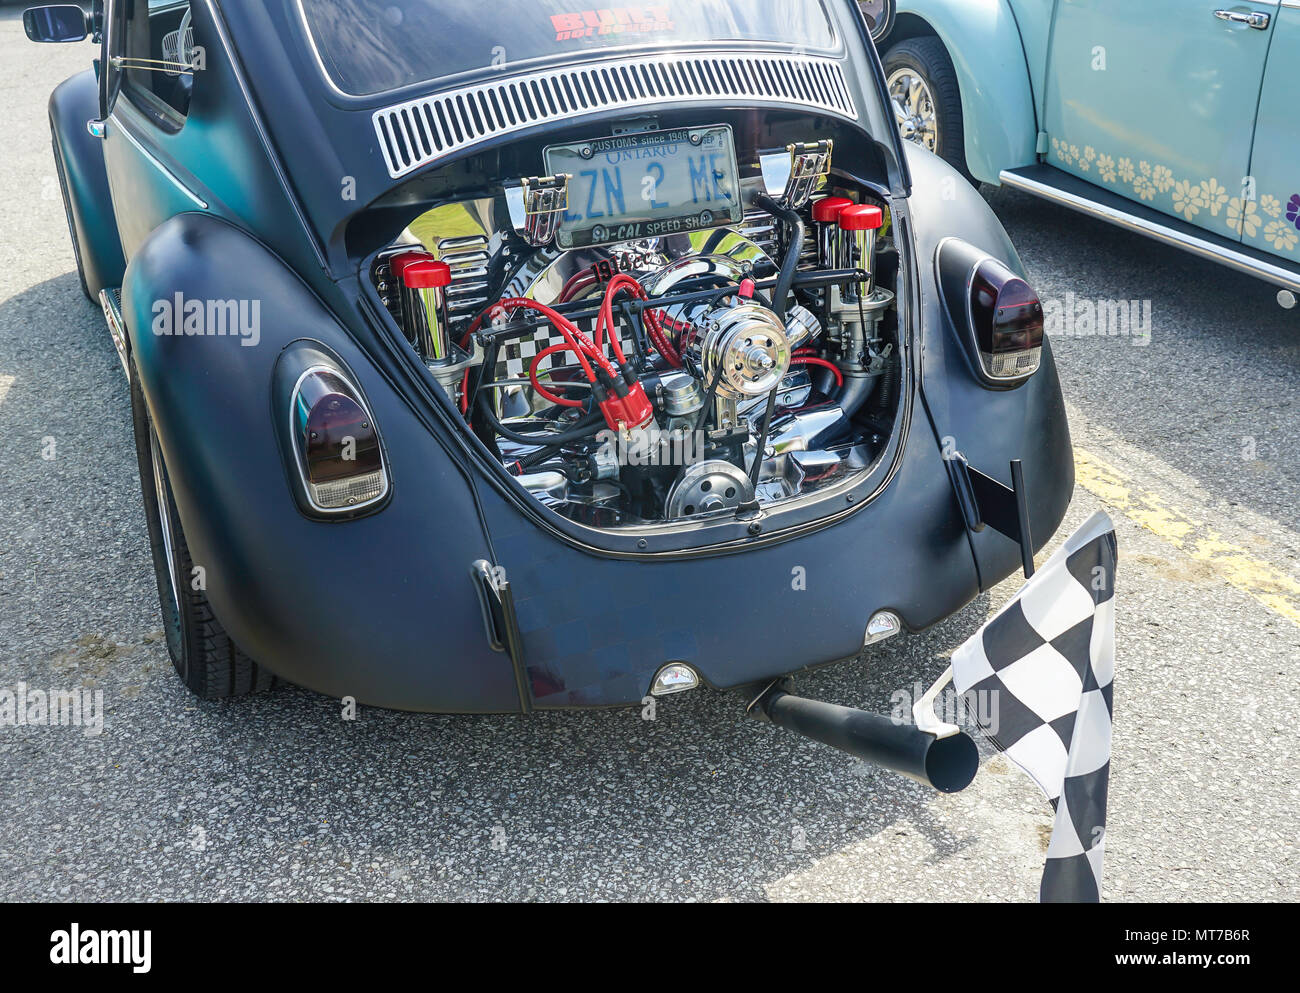 1969 Vw Bug With Racing Engine Old Vintage Cars At Antique Car Exhibition In Ontario Canada Stock Photo Alamy